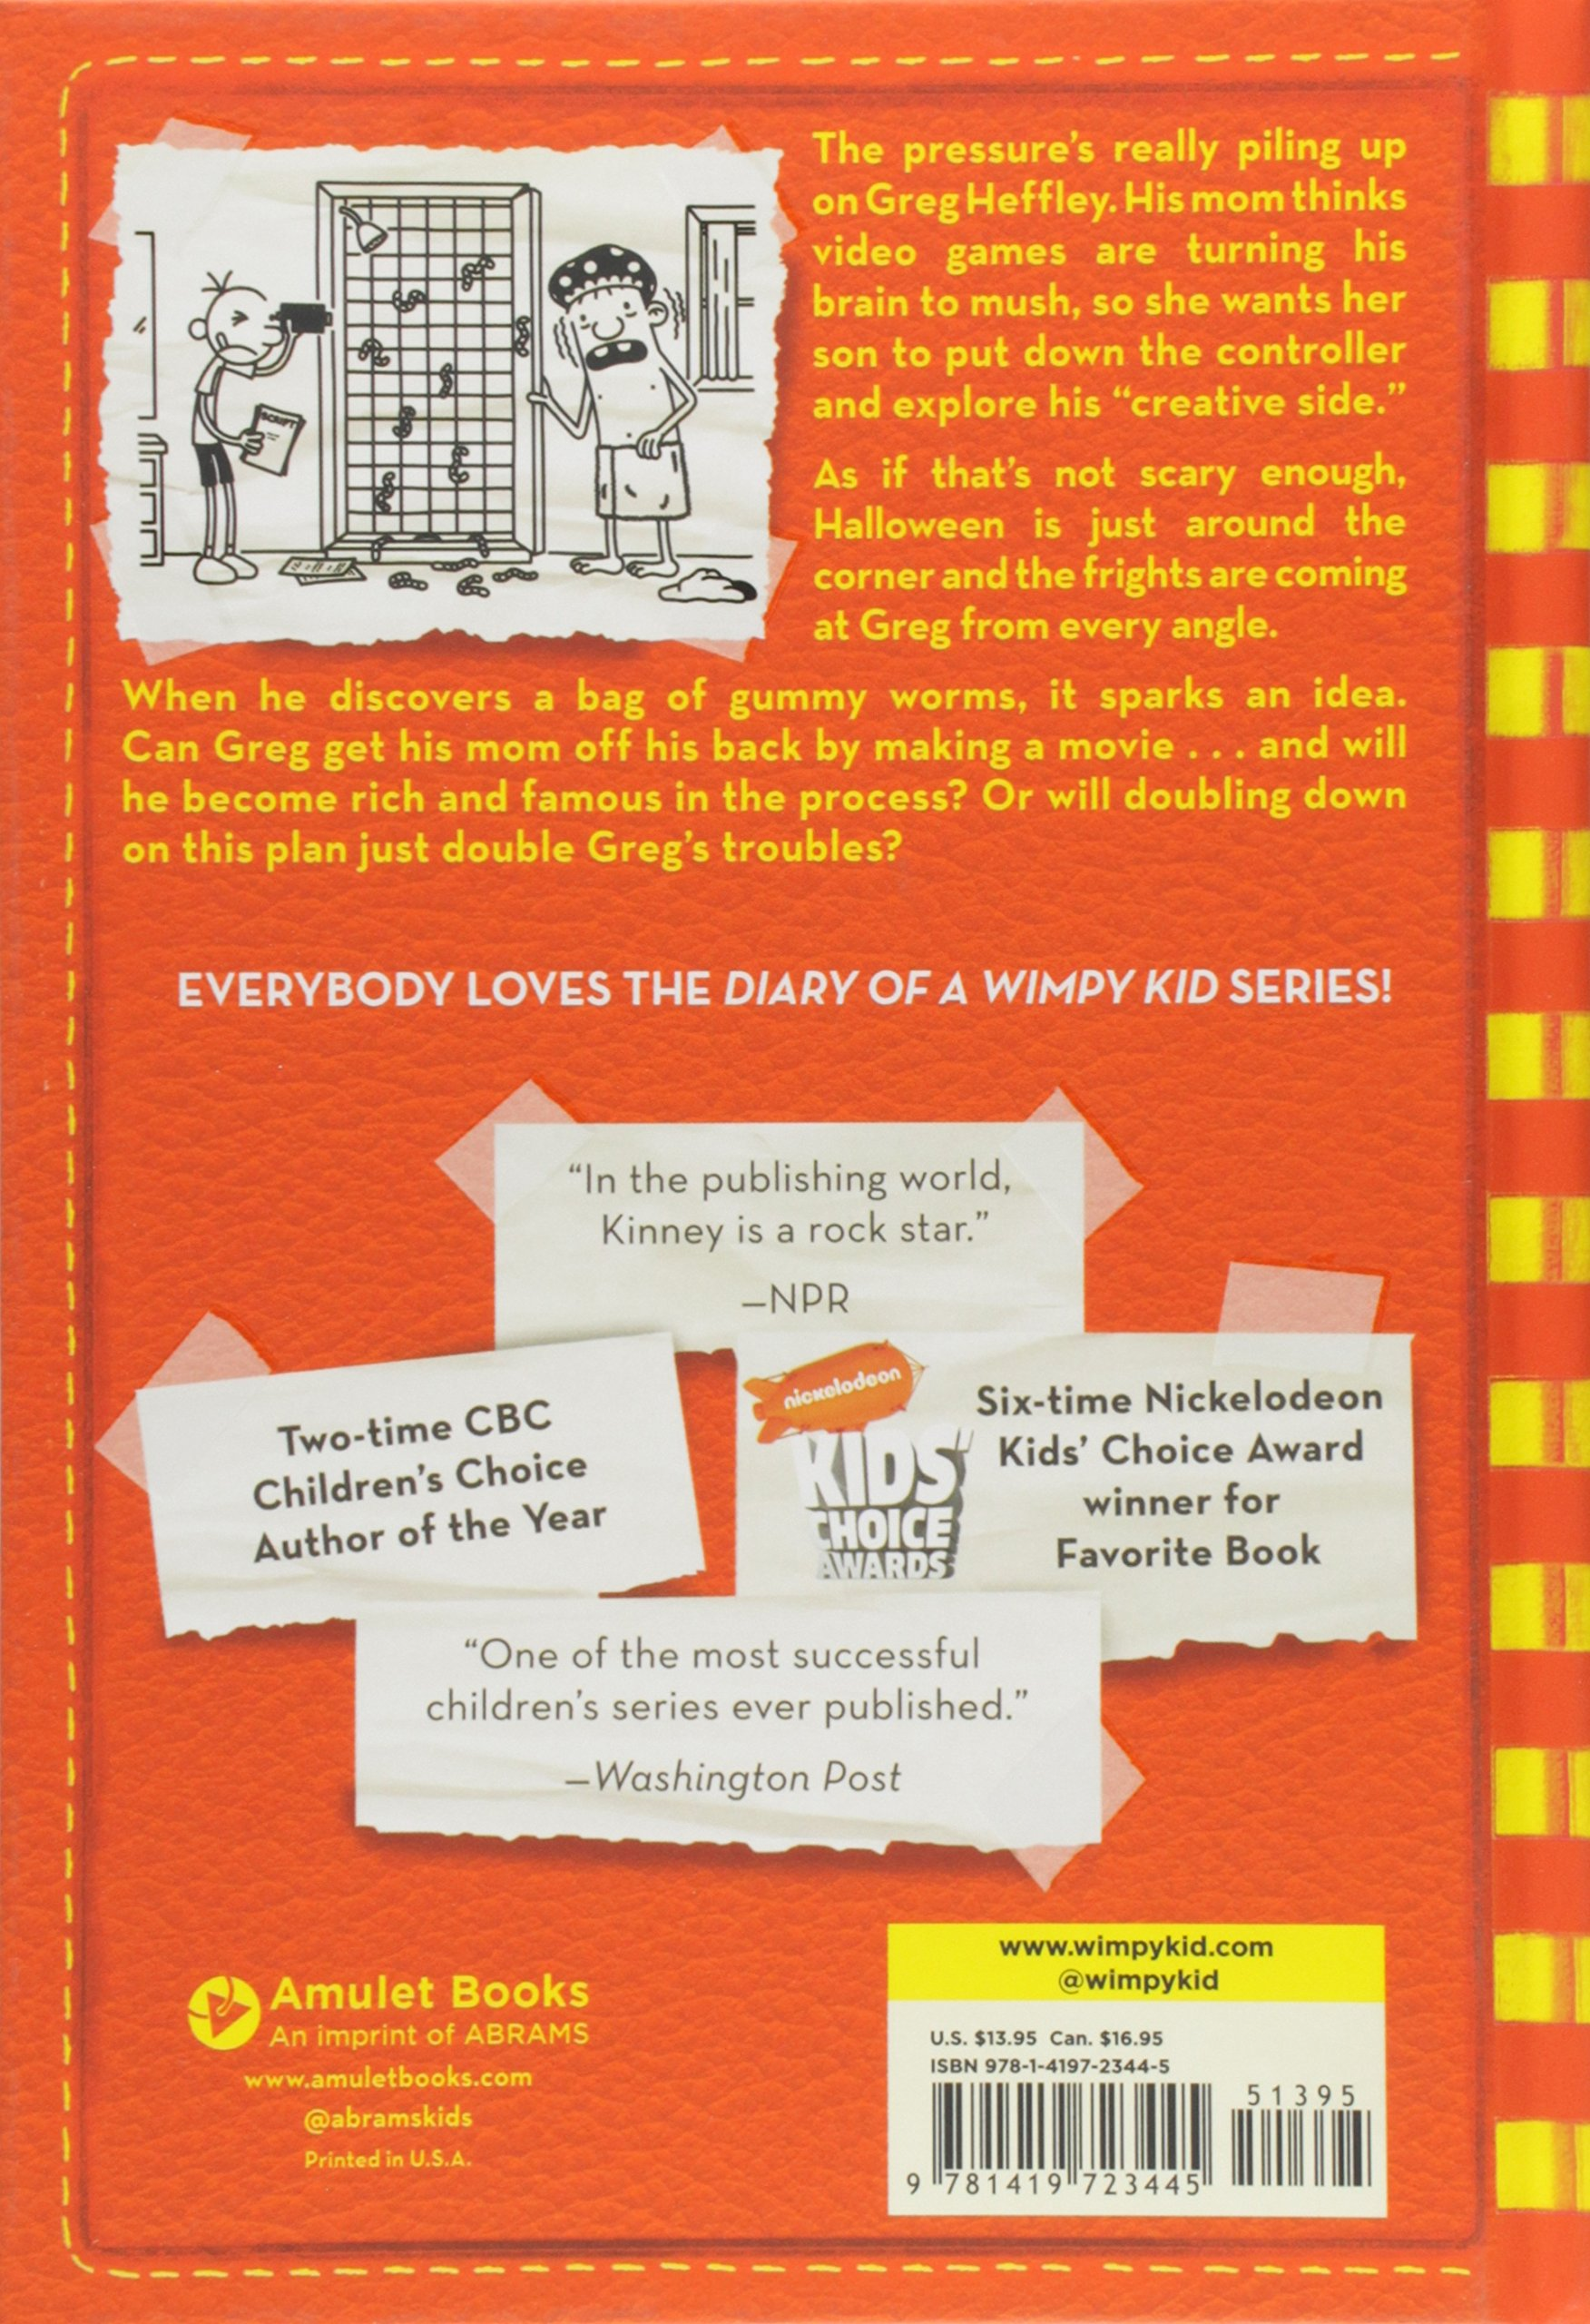 Image book 11 back coverg diary of a wimpy kid wiki book 11 back coverg solutioingenieria Choice Image